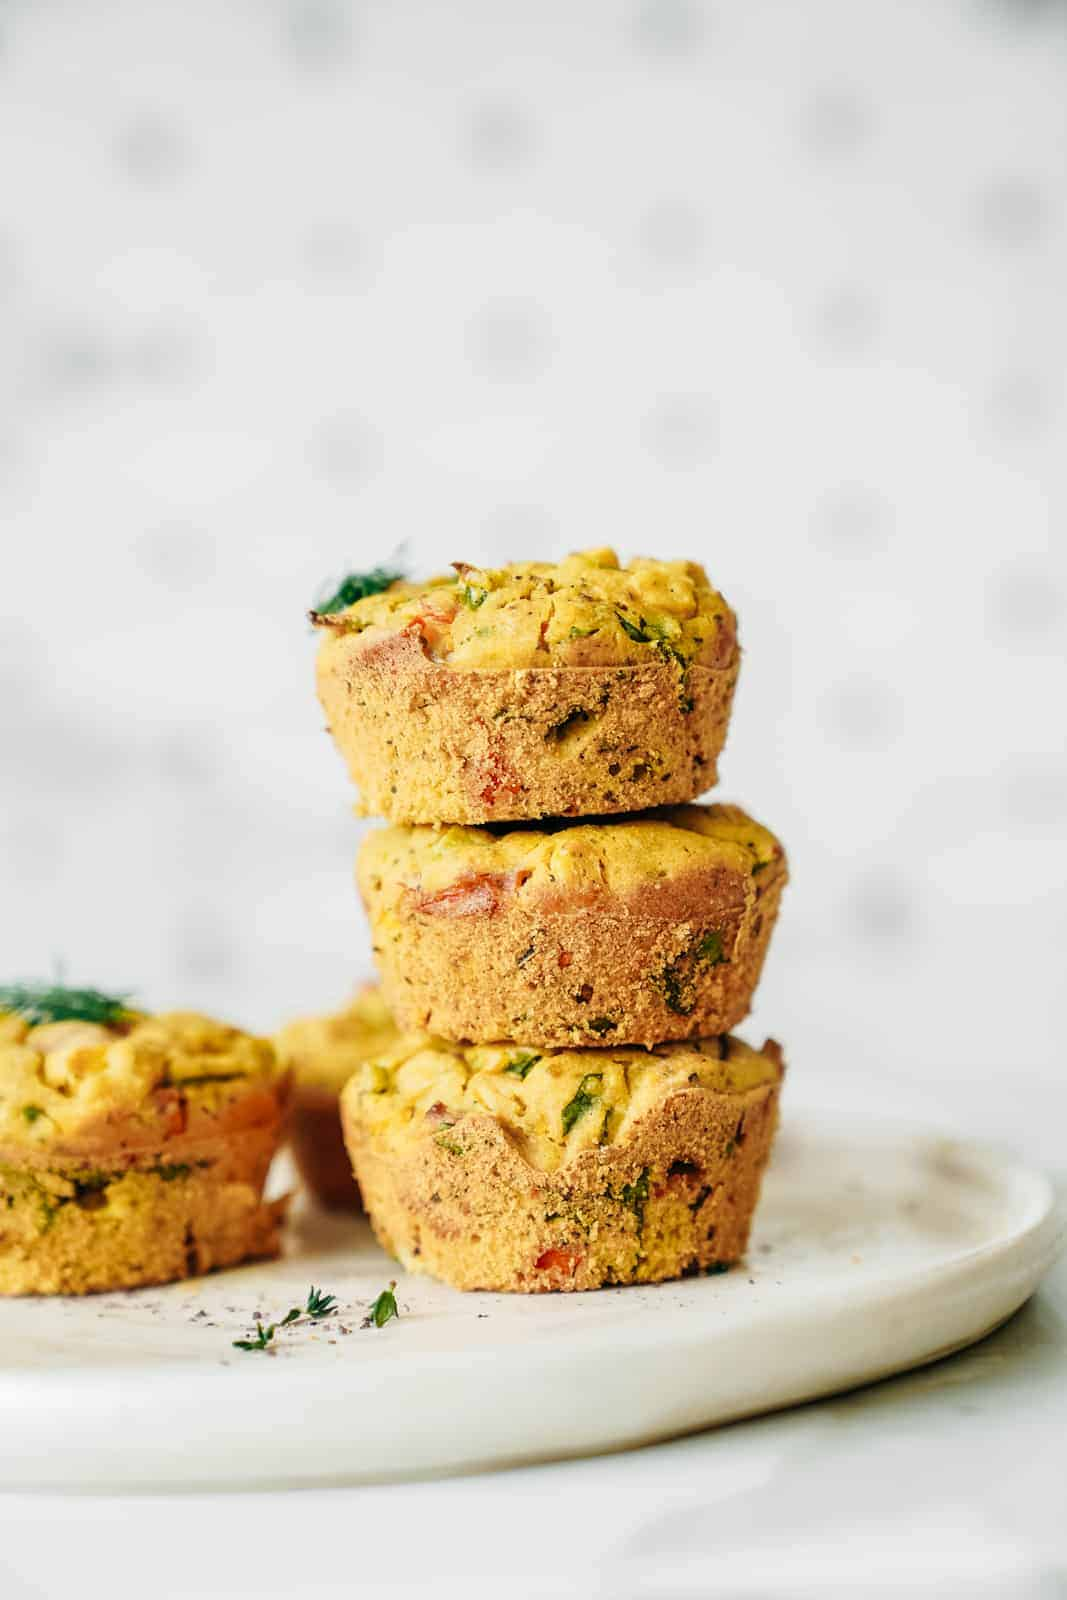 Stack of Vegan Chickpea Flour Muffins on a plate.